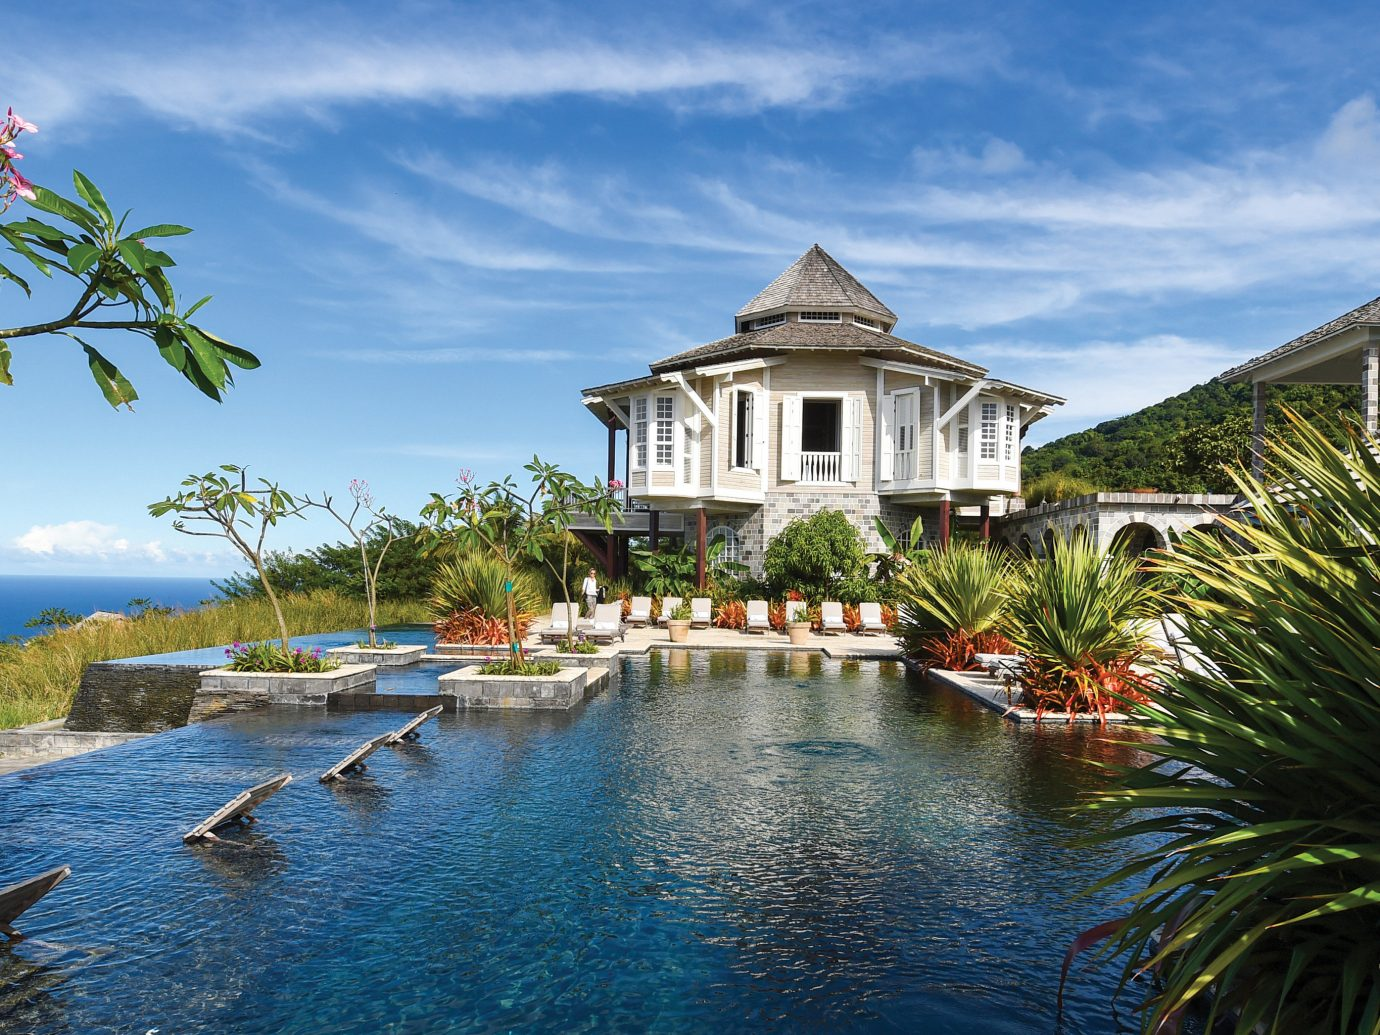 Trip Ideas water outdoor sky tree house Boat estate vacation Nature tourism Lake Resort Sea swimming pool surrounded pond Island